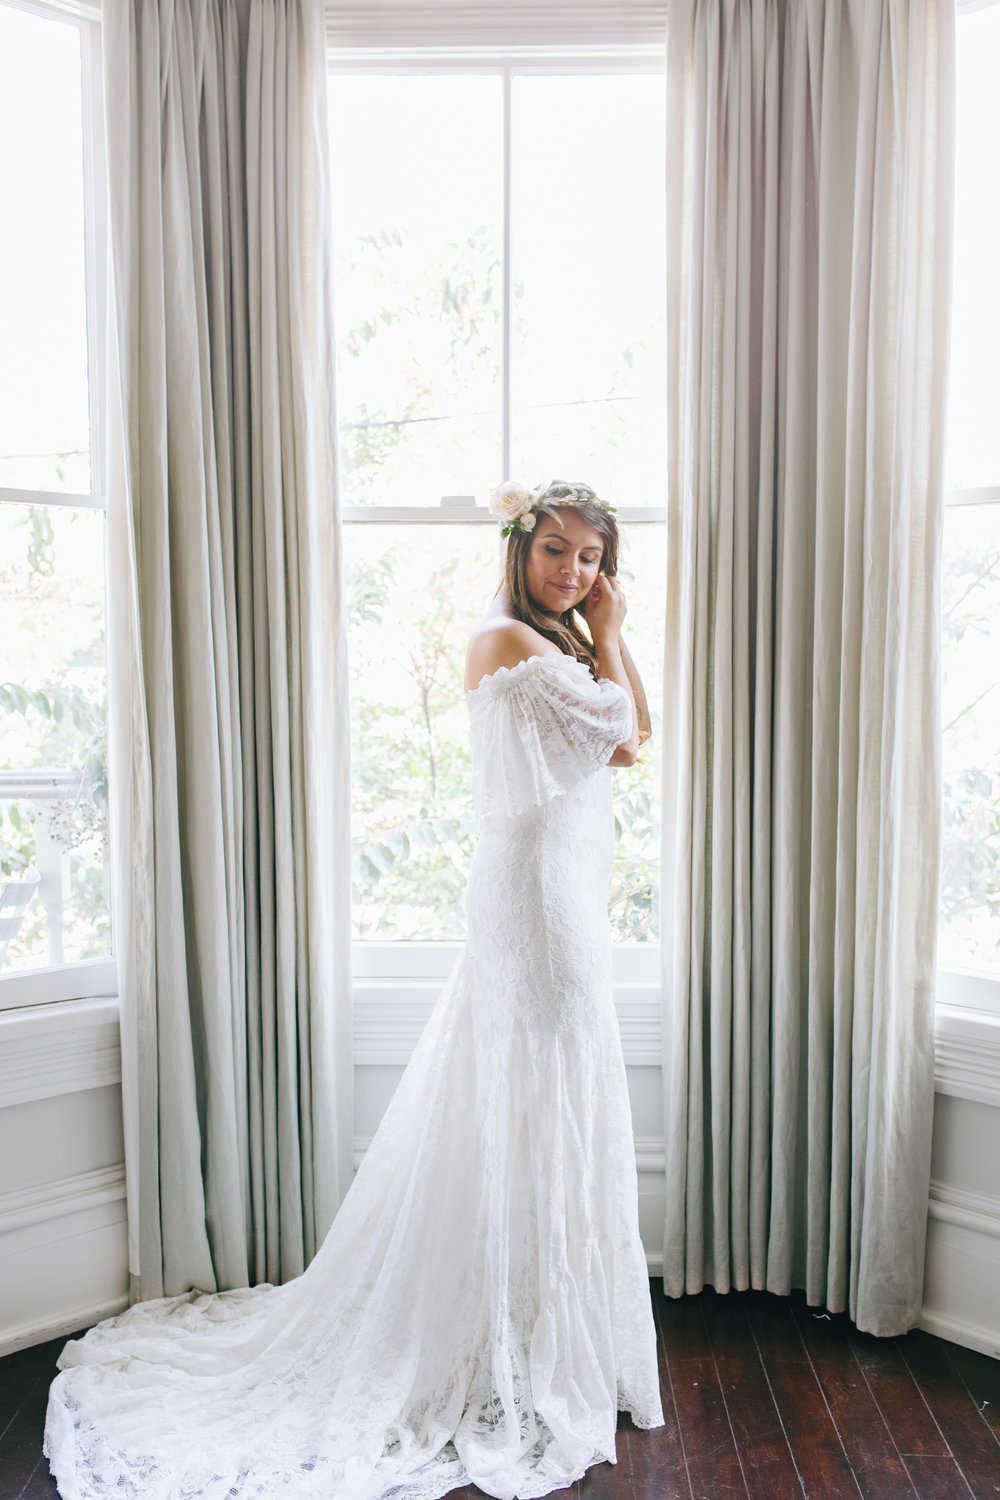 darling-juliet-photography-ivory-and-beau-bridal-boutique-savannah-wedding-dresses-savannah-bridal-gowns-daughters-of-simone-winnie-savannah-florist-boho-wedding-savannah-boho-wedding-roundhouse-railroad-musuem-wedding-8.jpg